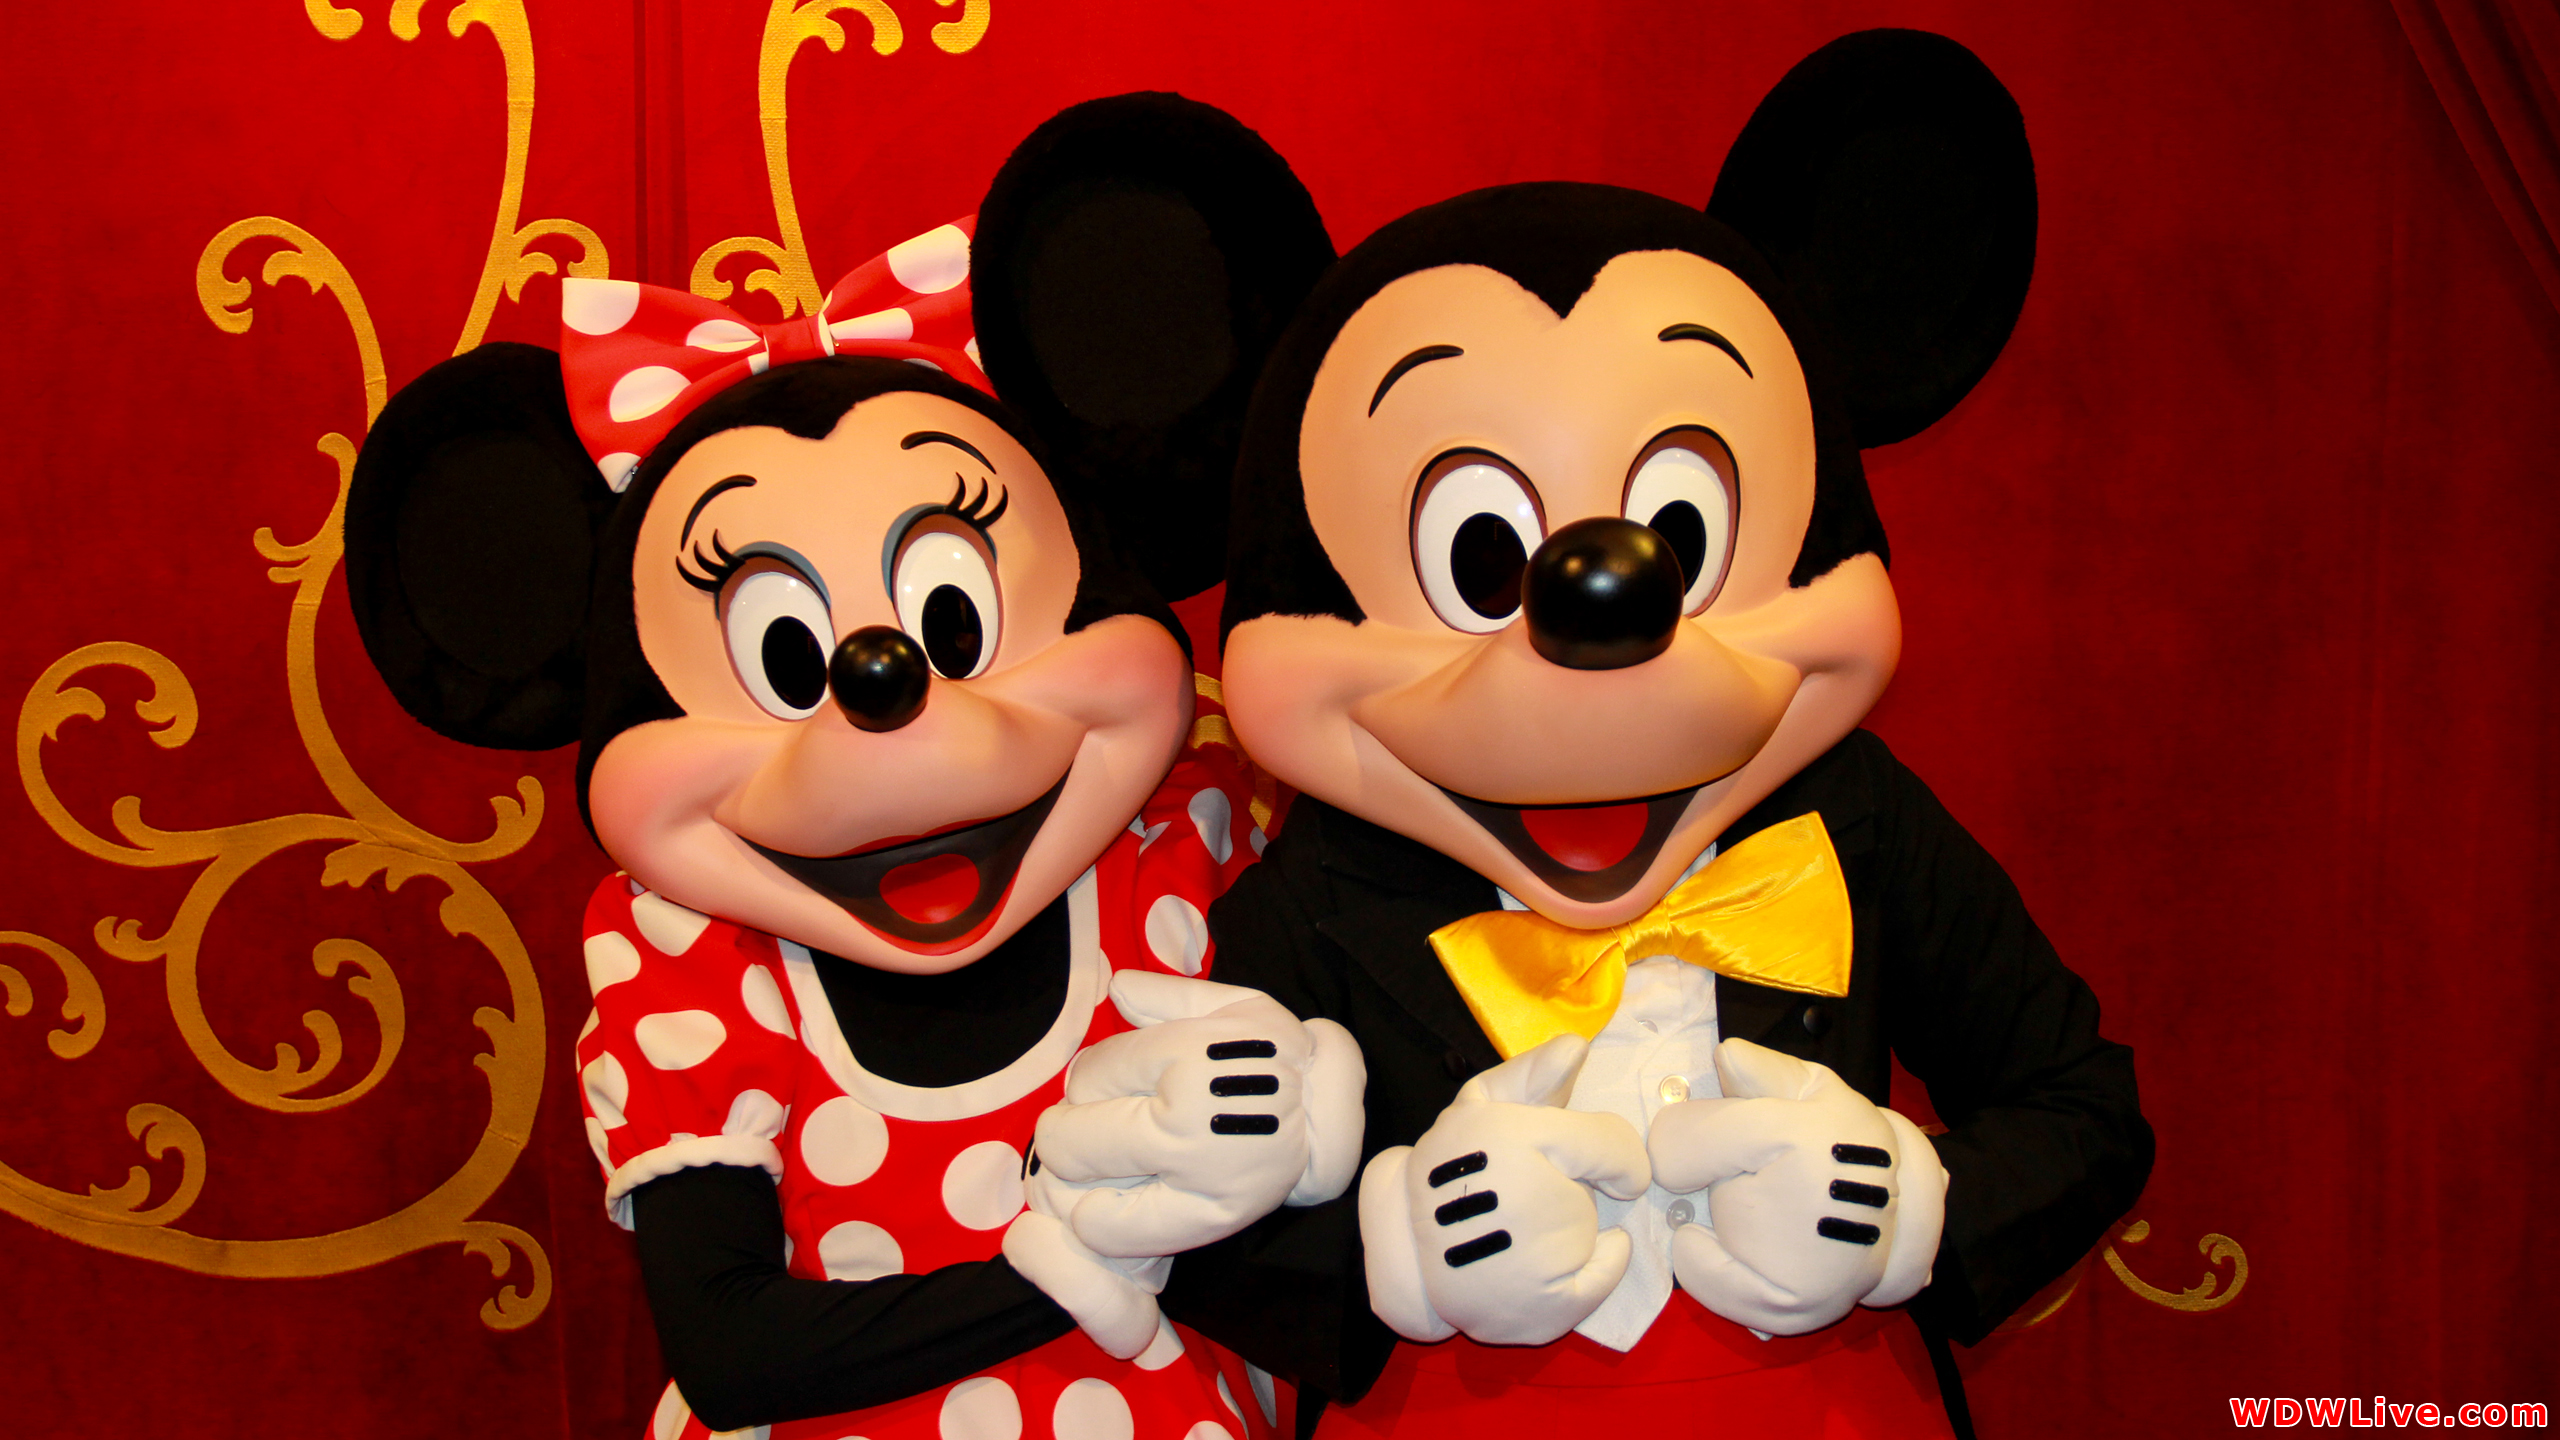 Mickey And Minnie Wallpapers Cartoon Hq Mickey And Minnie